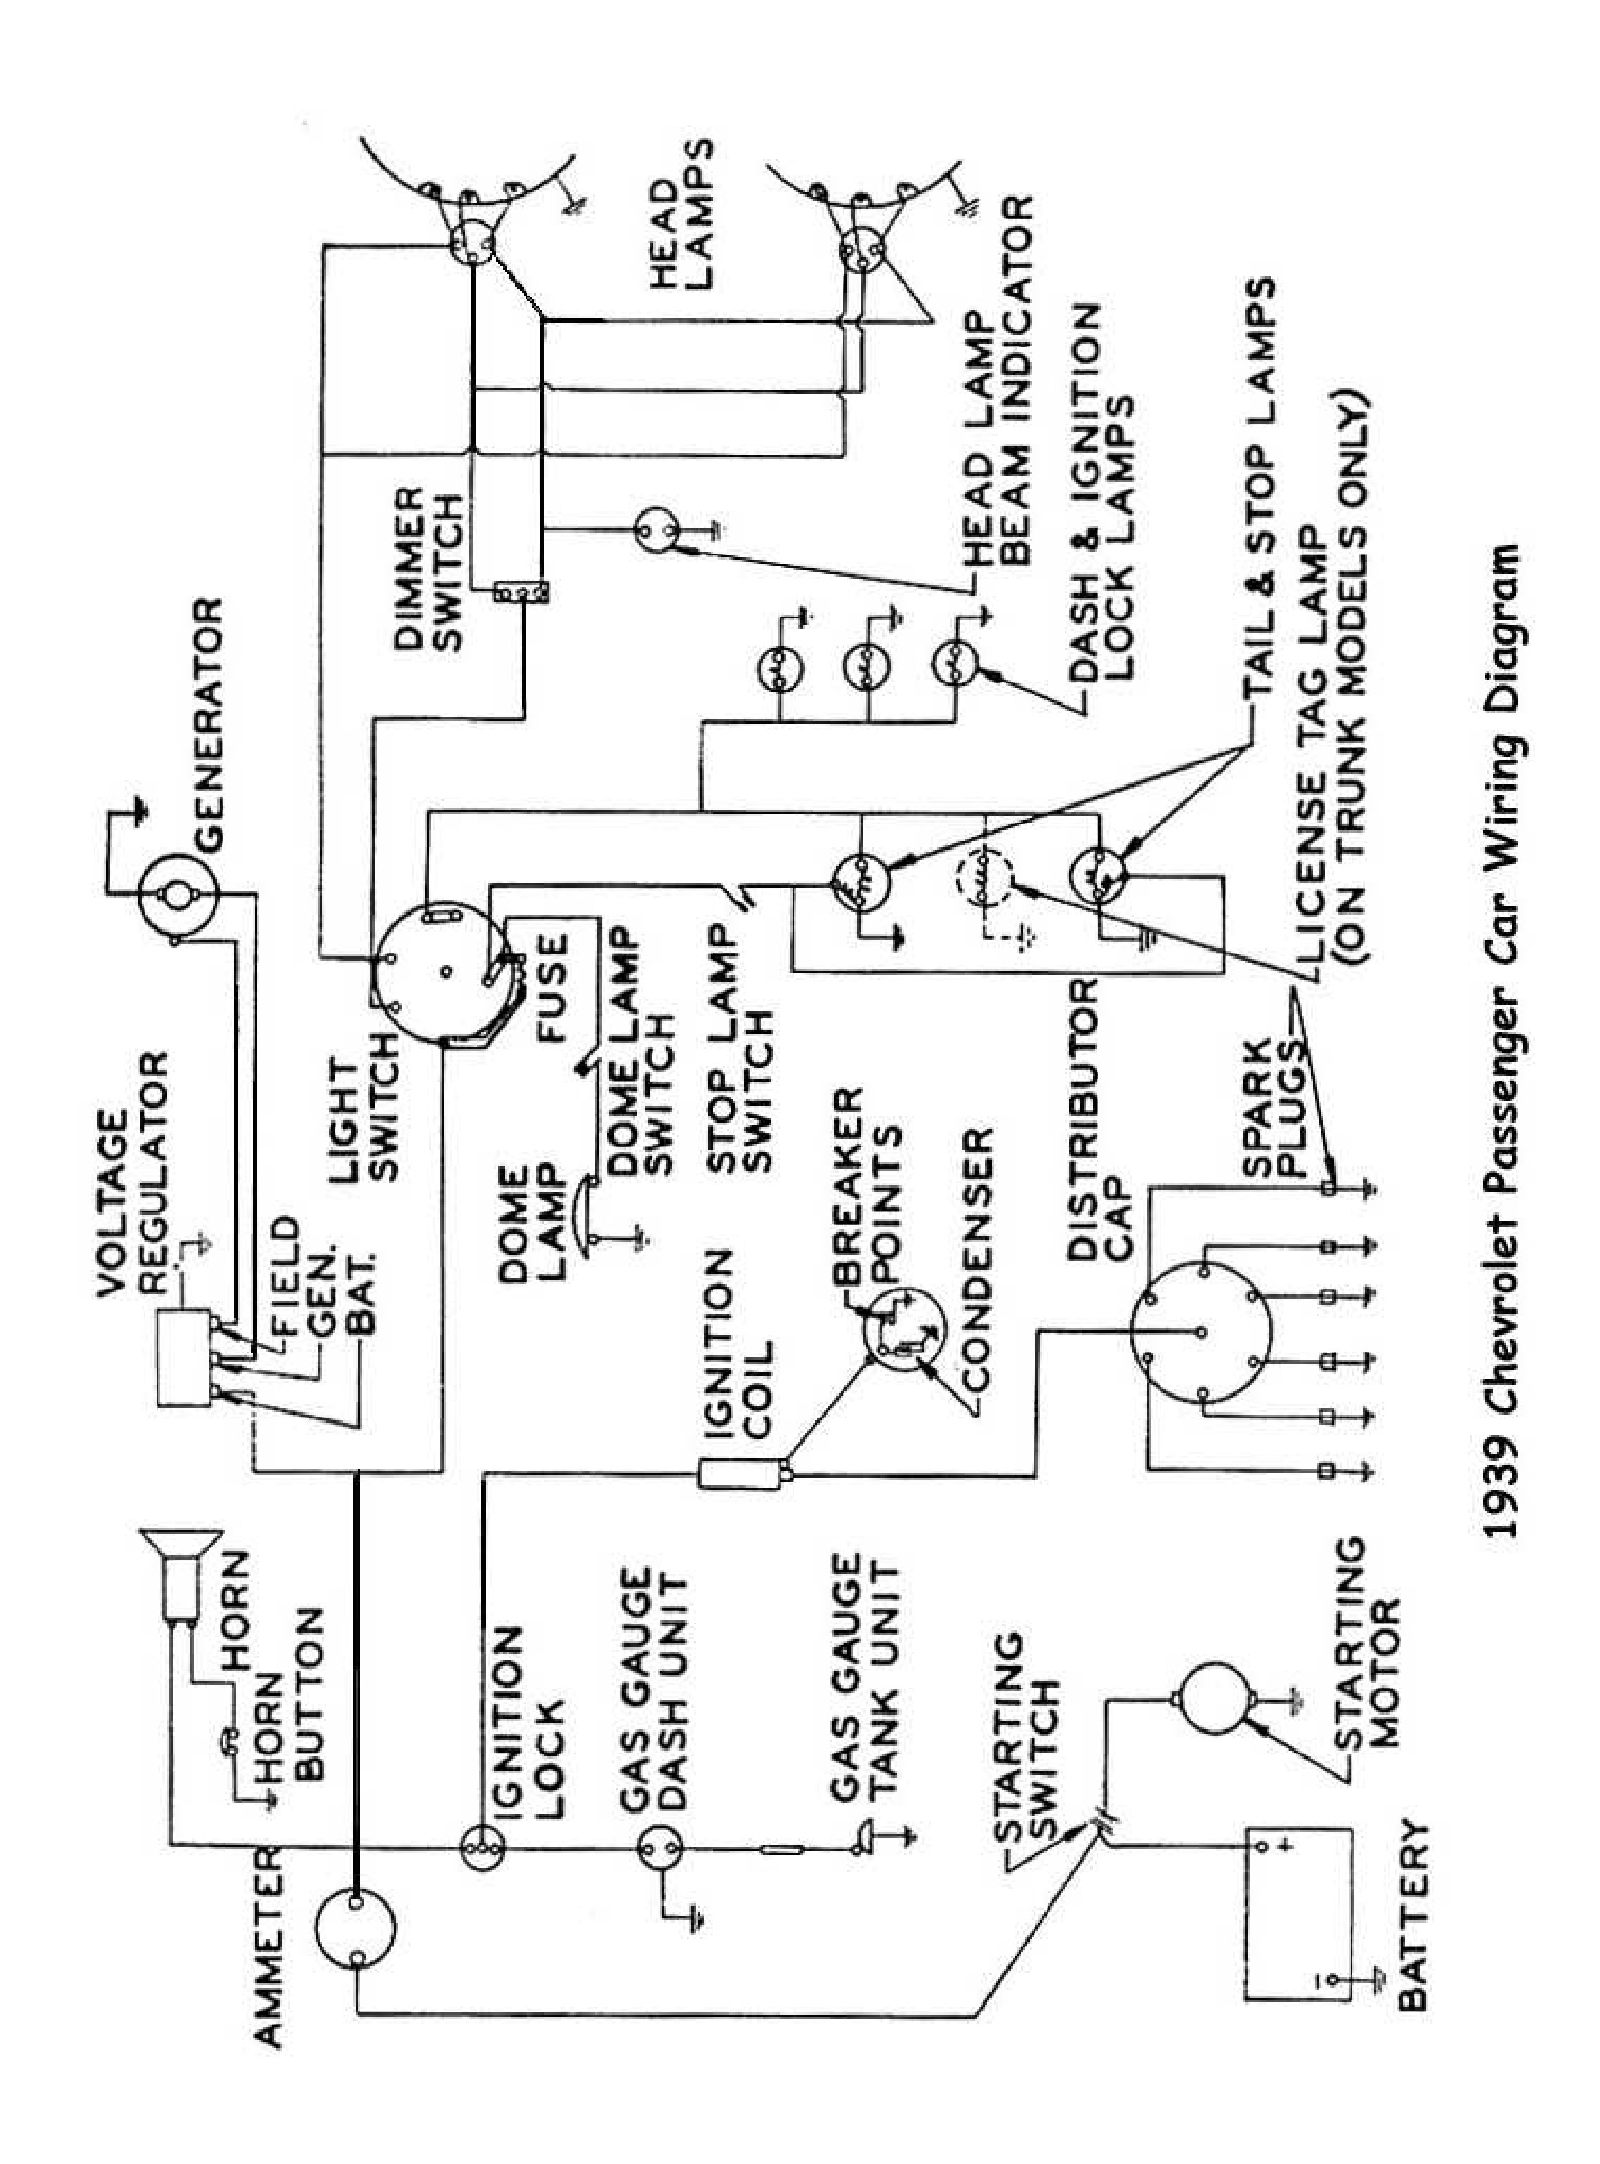 39car chevy wiring diagrams 89 chevy truck ignition switch wiring diagram at gsmx.co